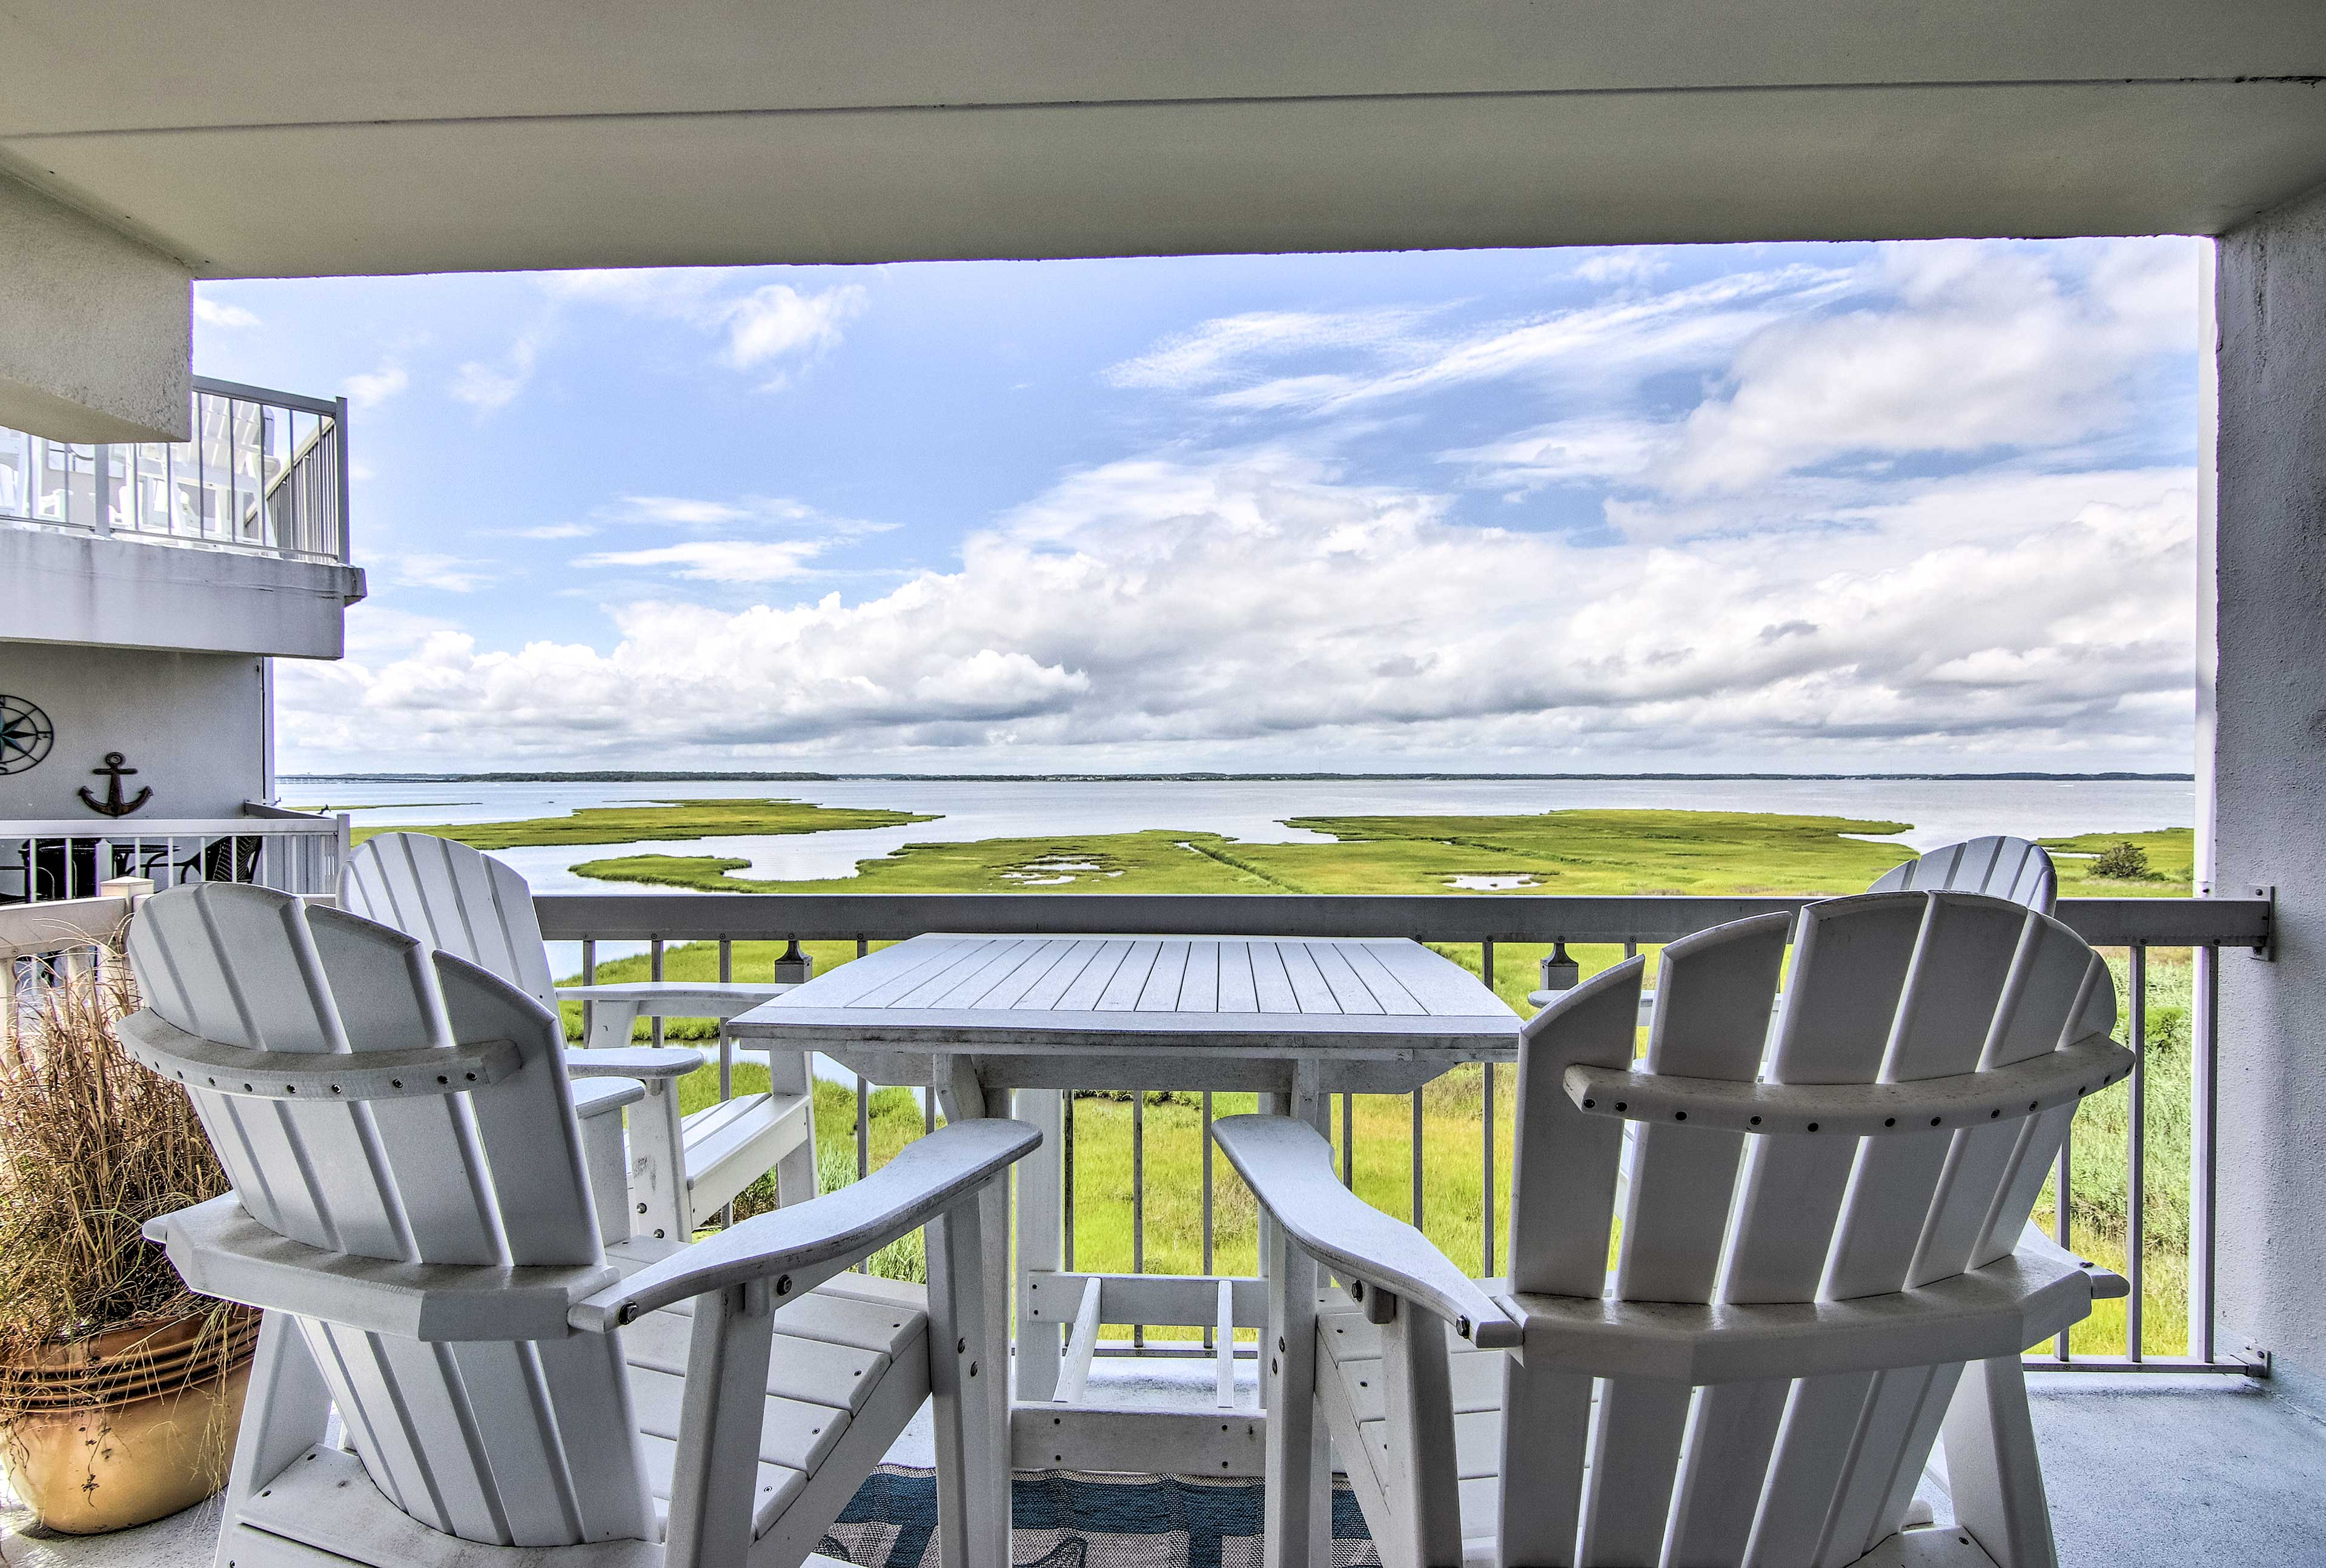 Treat yourself to a relaxing escape at this Ocean City vacation rental condo!